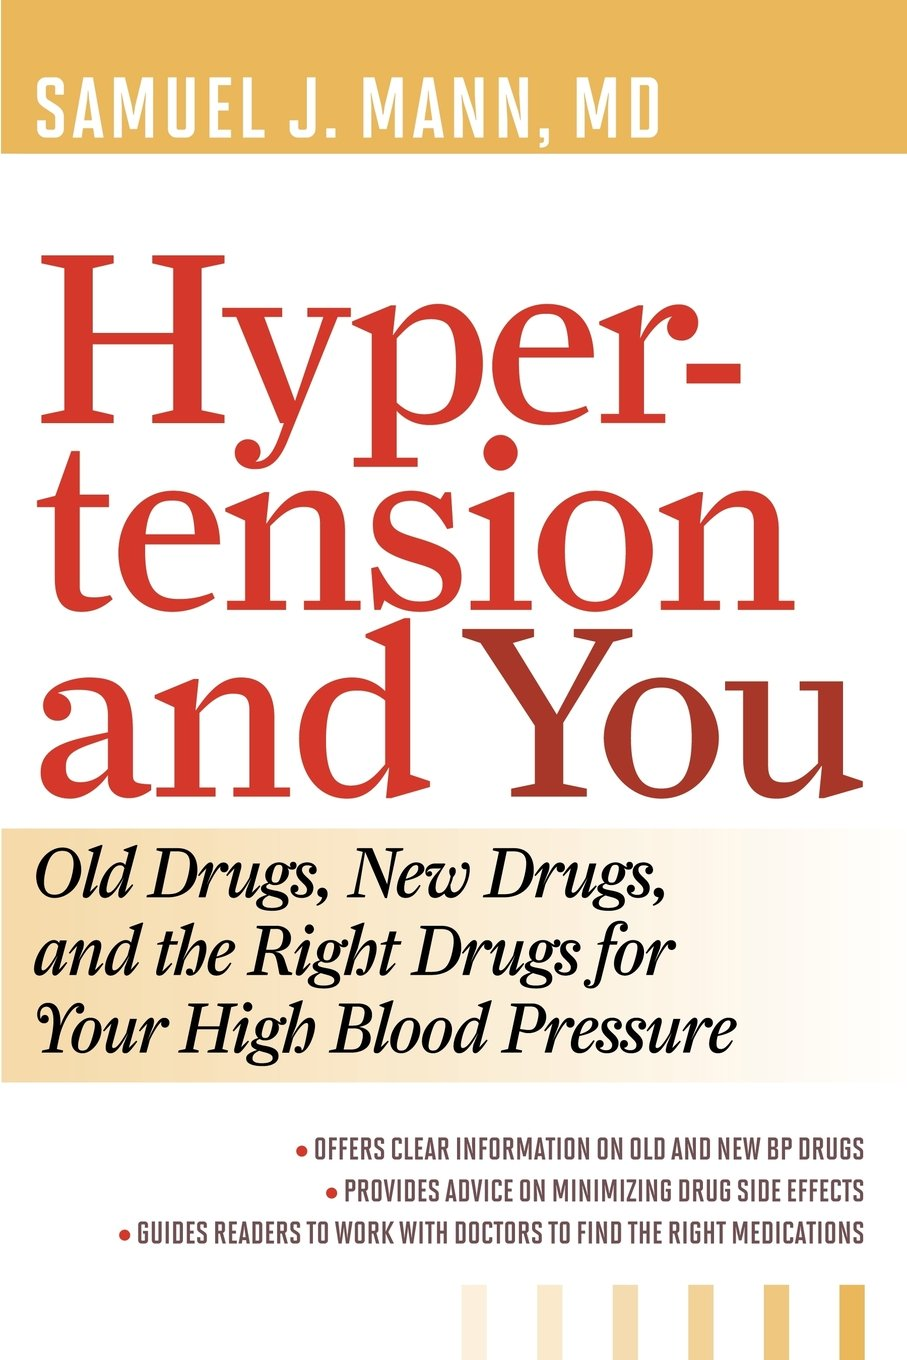 Hypertension and you old drugs new drugs and the right drugs for hypertension and you old drugs new drugs and the right drugs for your high blood pressure samuel j mann 9781442215177 amazon books geenschuldenfo Images